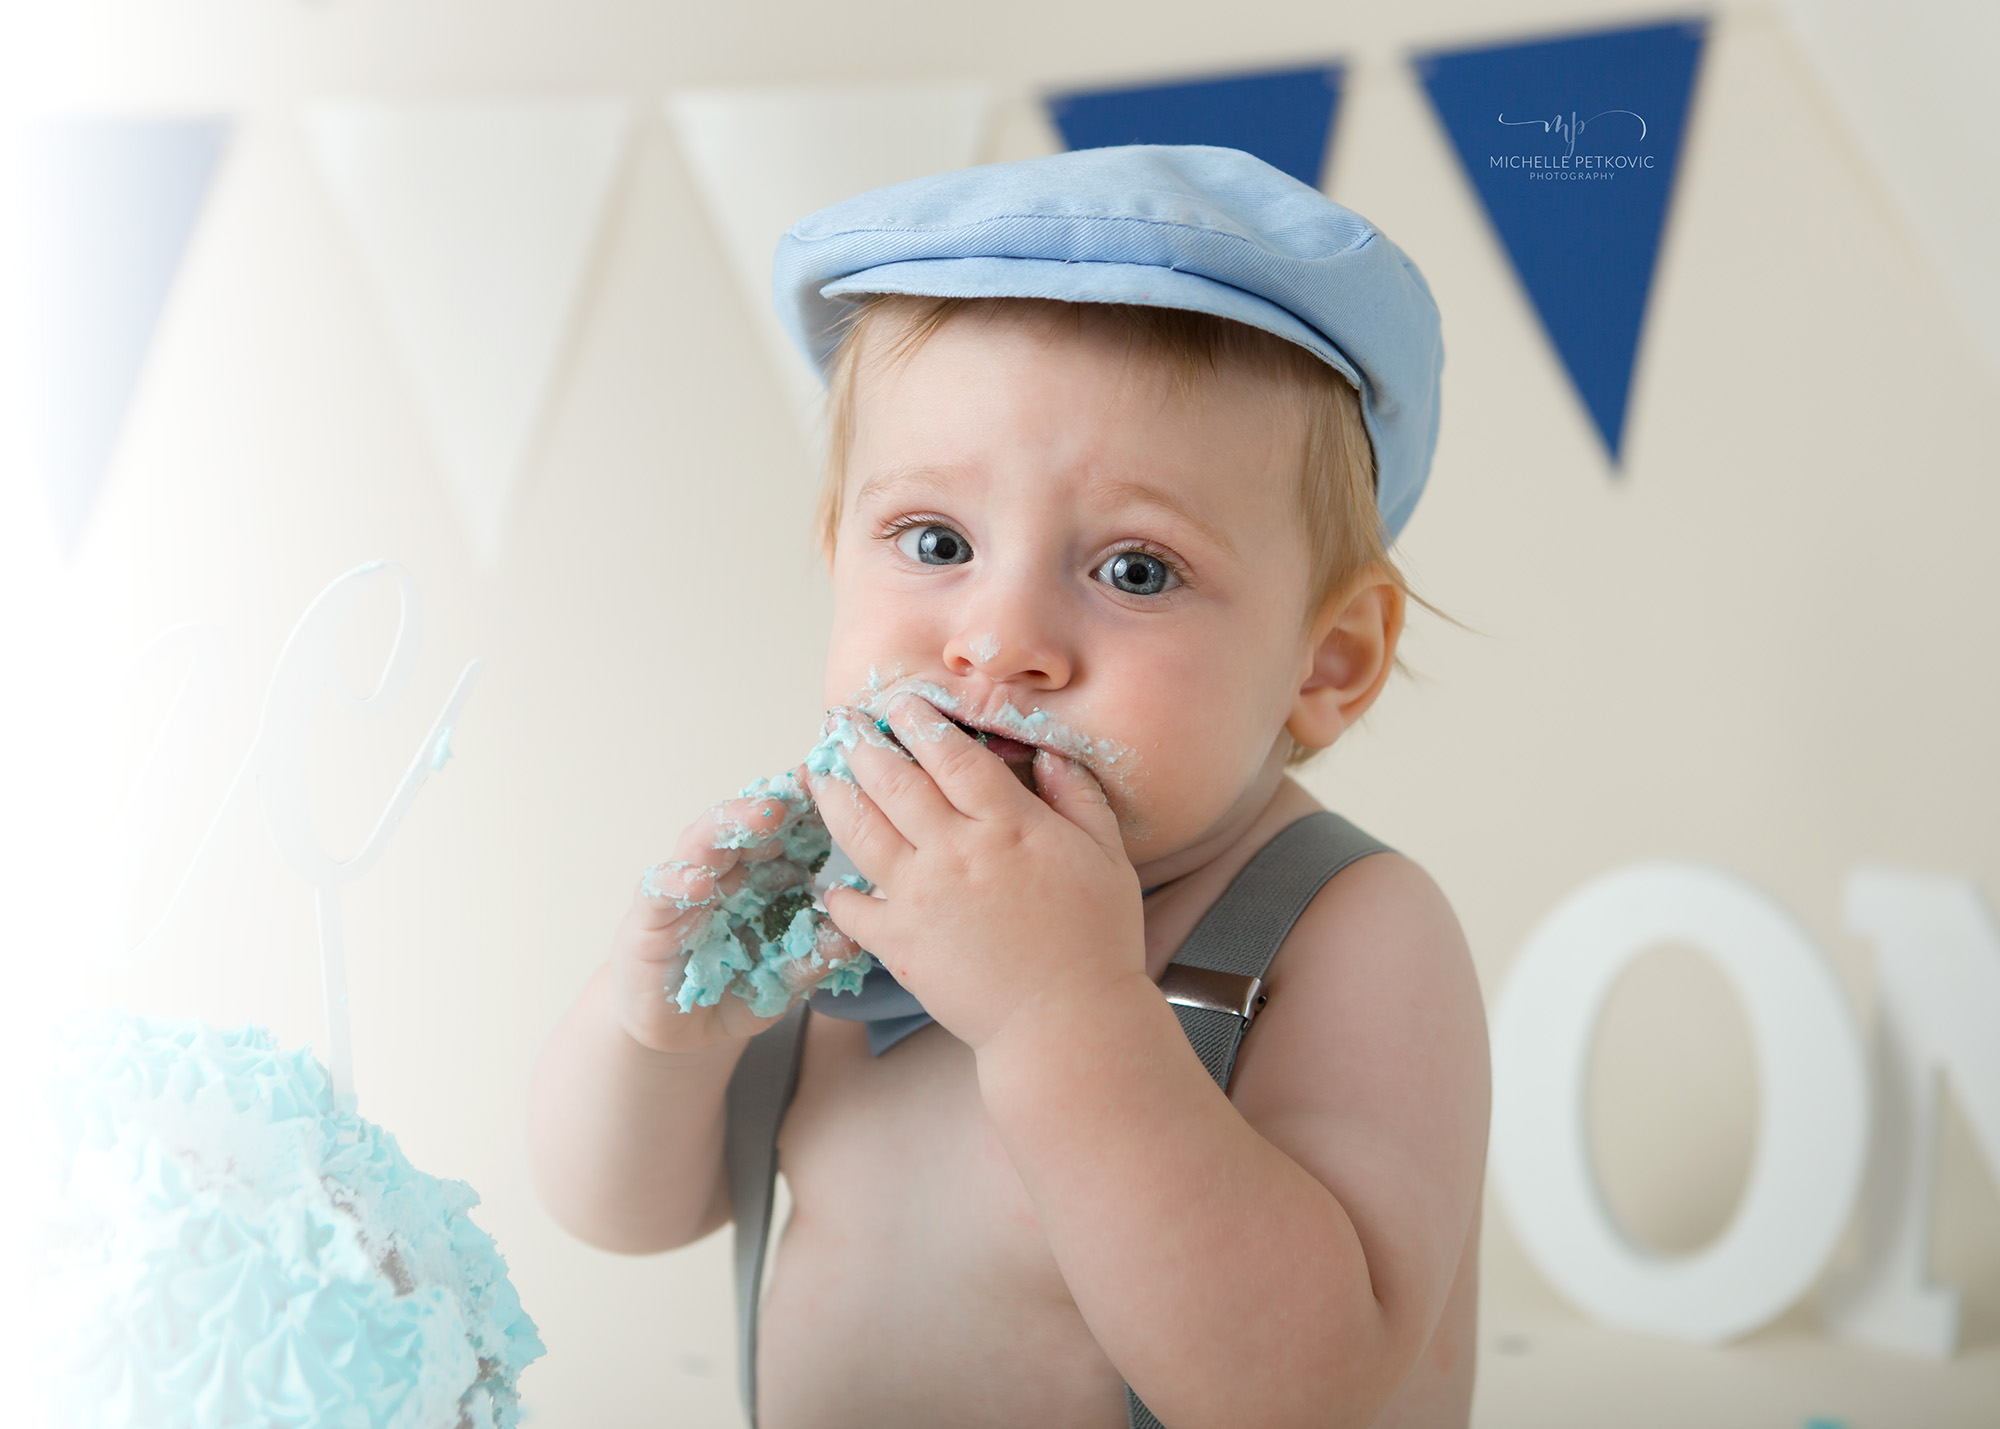 - 100% value for money and amazing photography! The photos were absolutely incredible for my sons cake smash, so very happy with them. Michelle was very professional, friendly and welcoming into her studio. We felt very comfortable and would definitely recommend her. We will use her services again for sure!